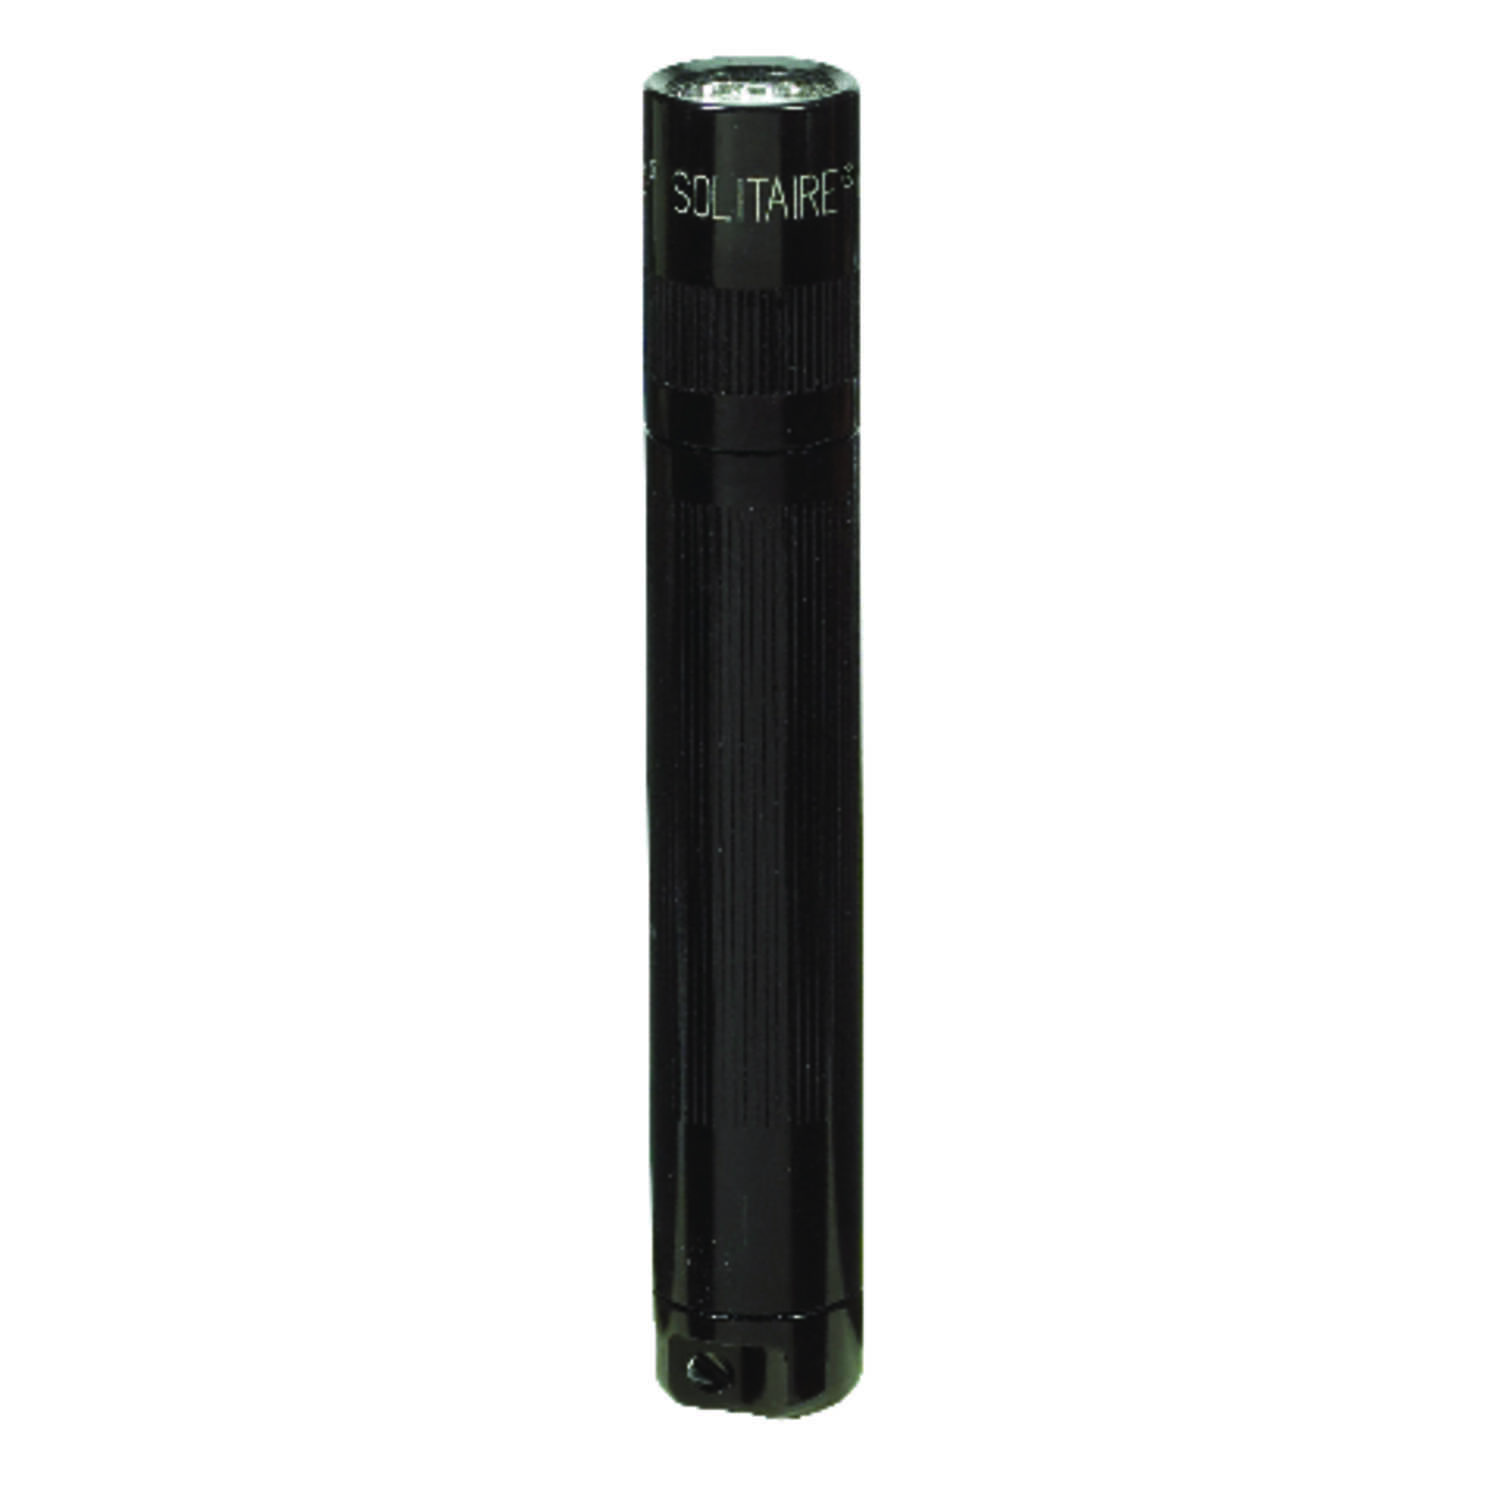 Maglite  Solitaire  2 lumens Black  Incandescent  Flashlight With Key Ring  AAA Battery